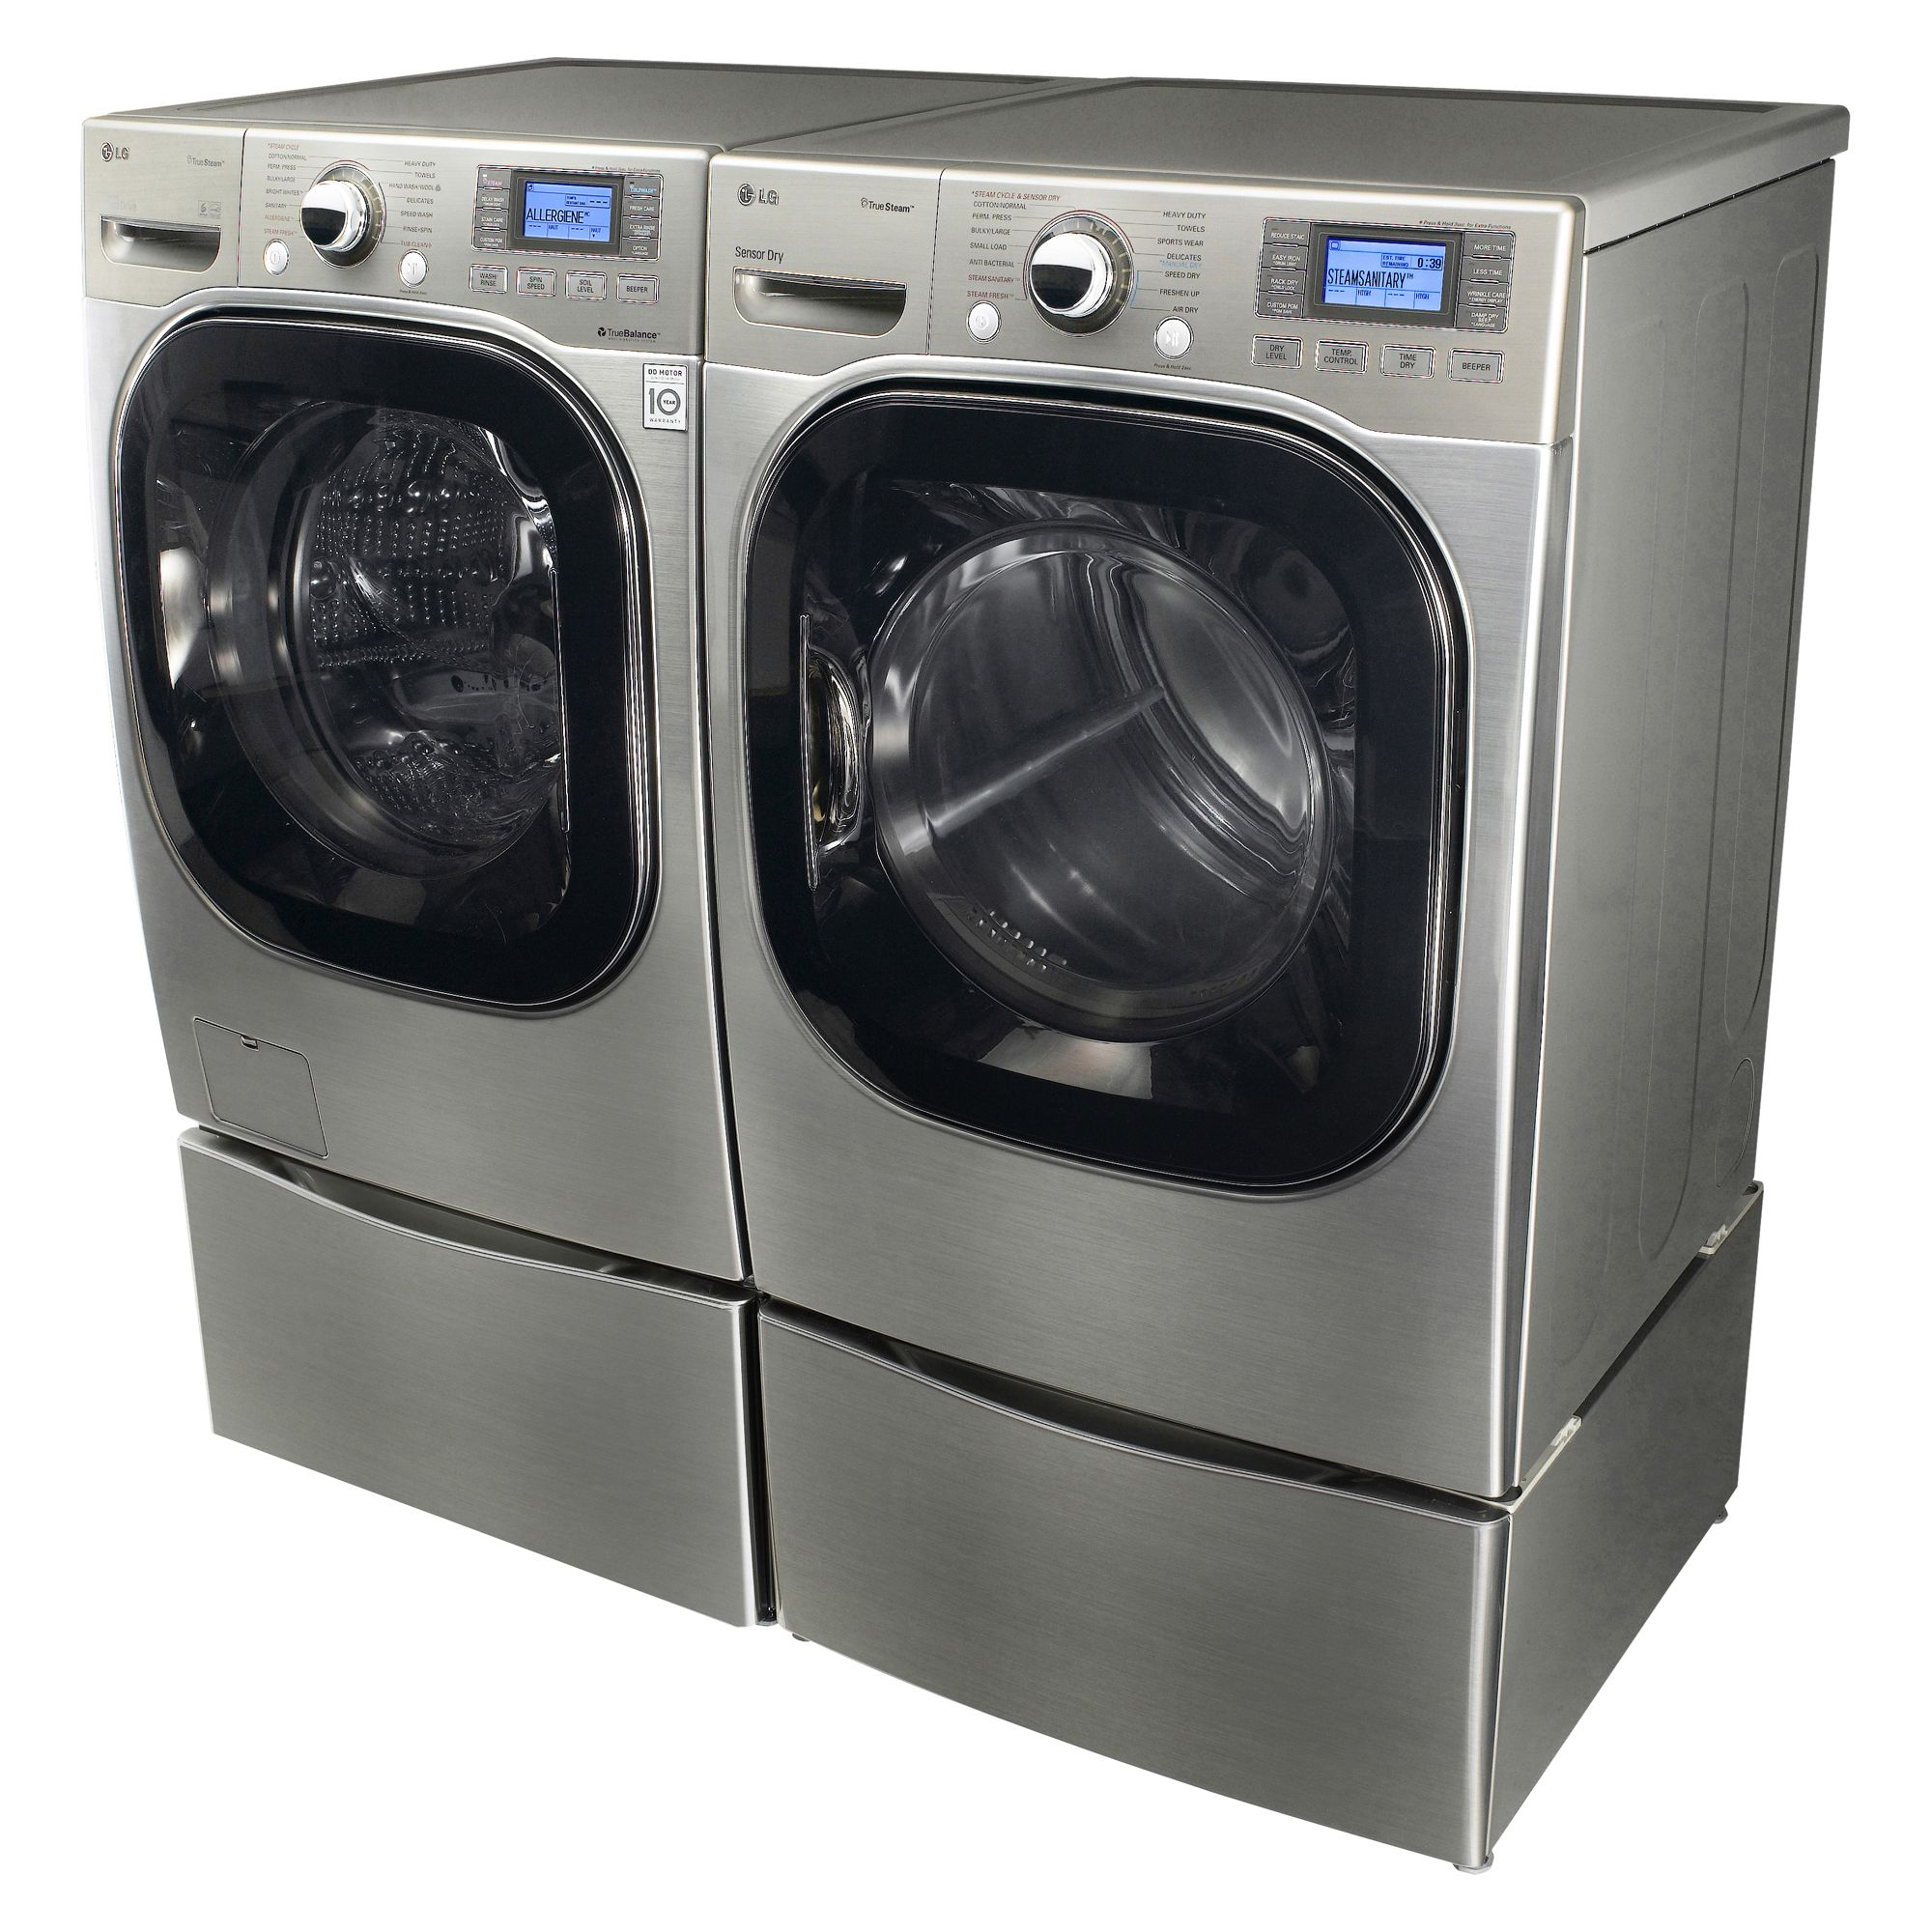 LG Front-load Steam Washing Machine 4.2 cubic feet